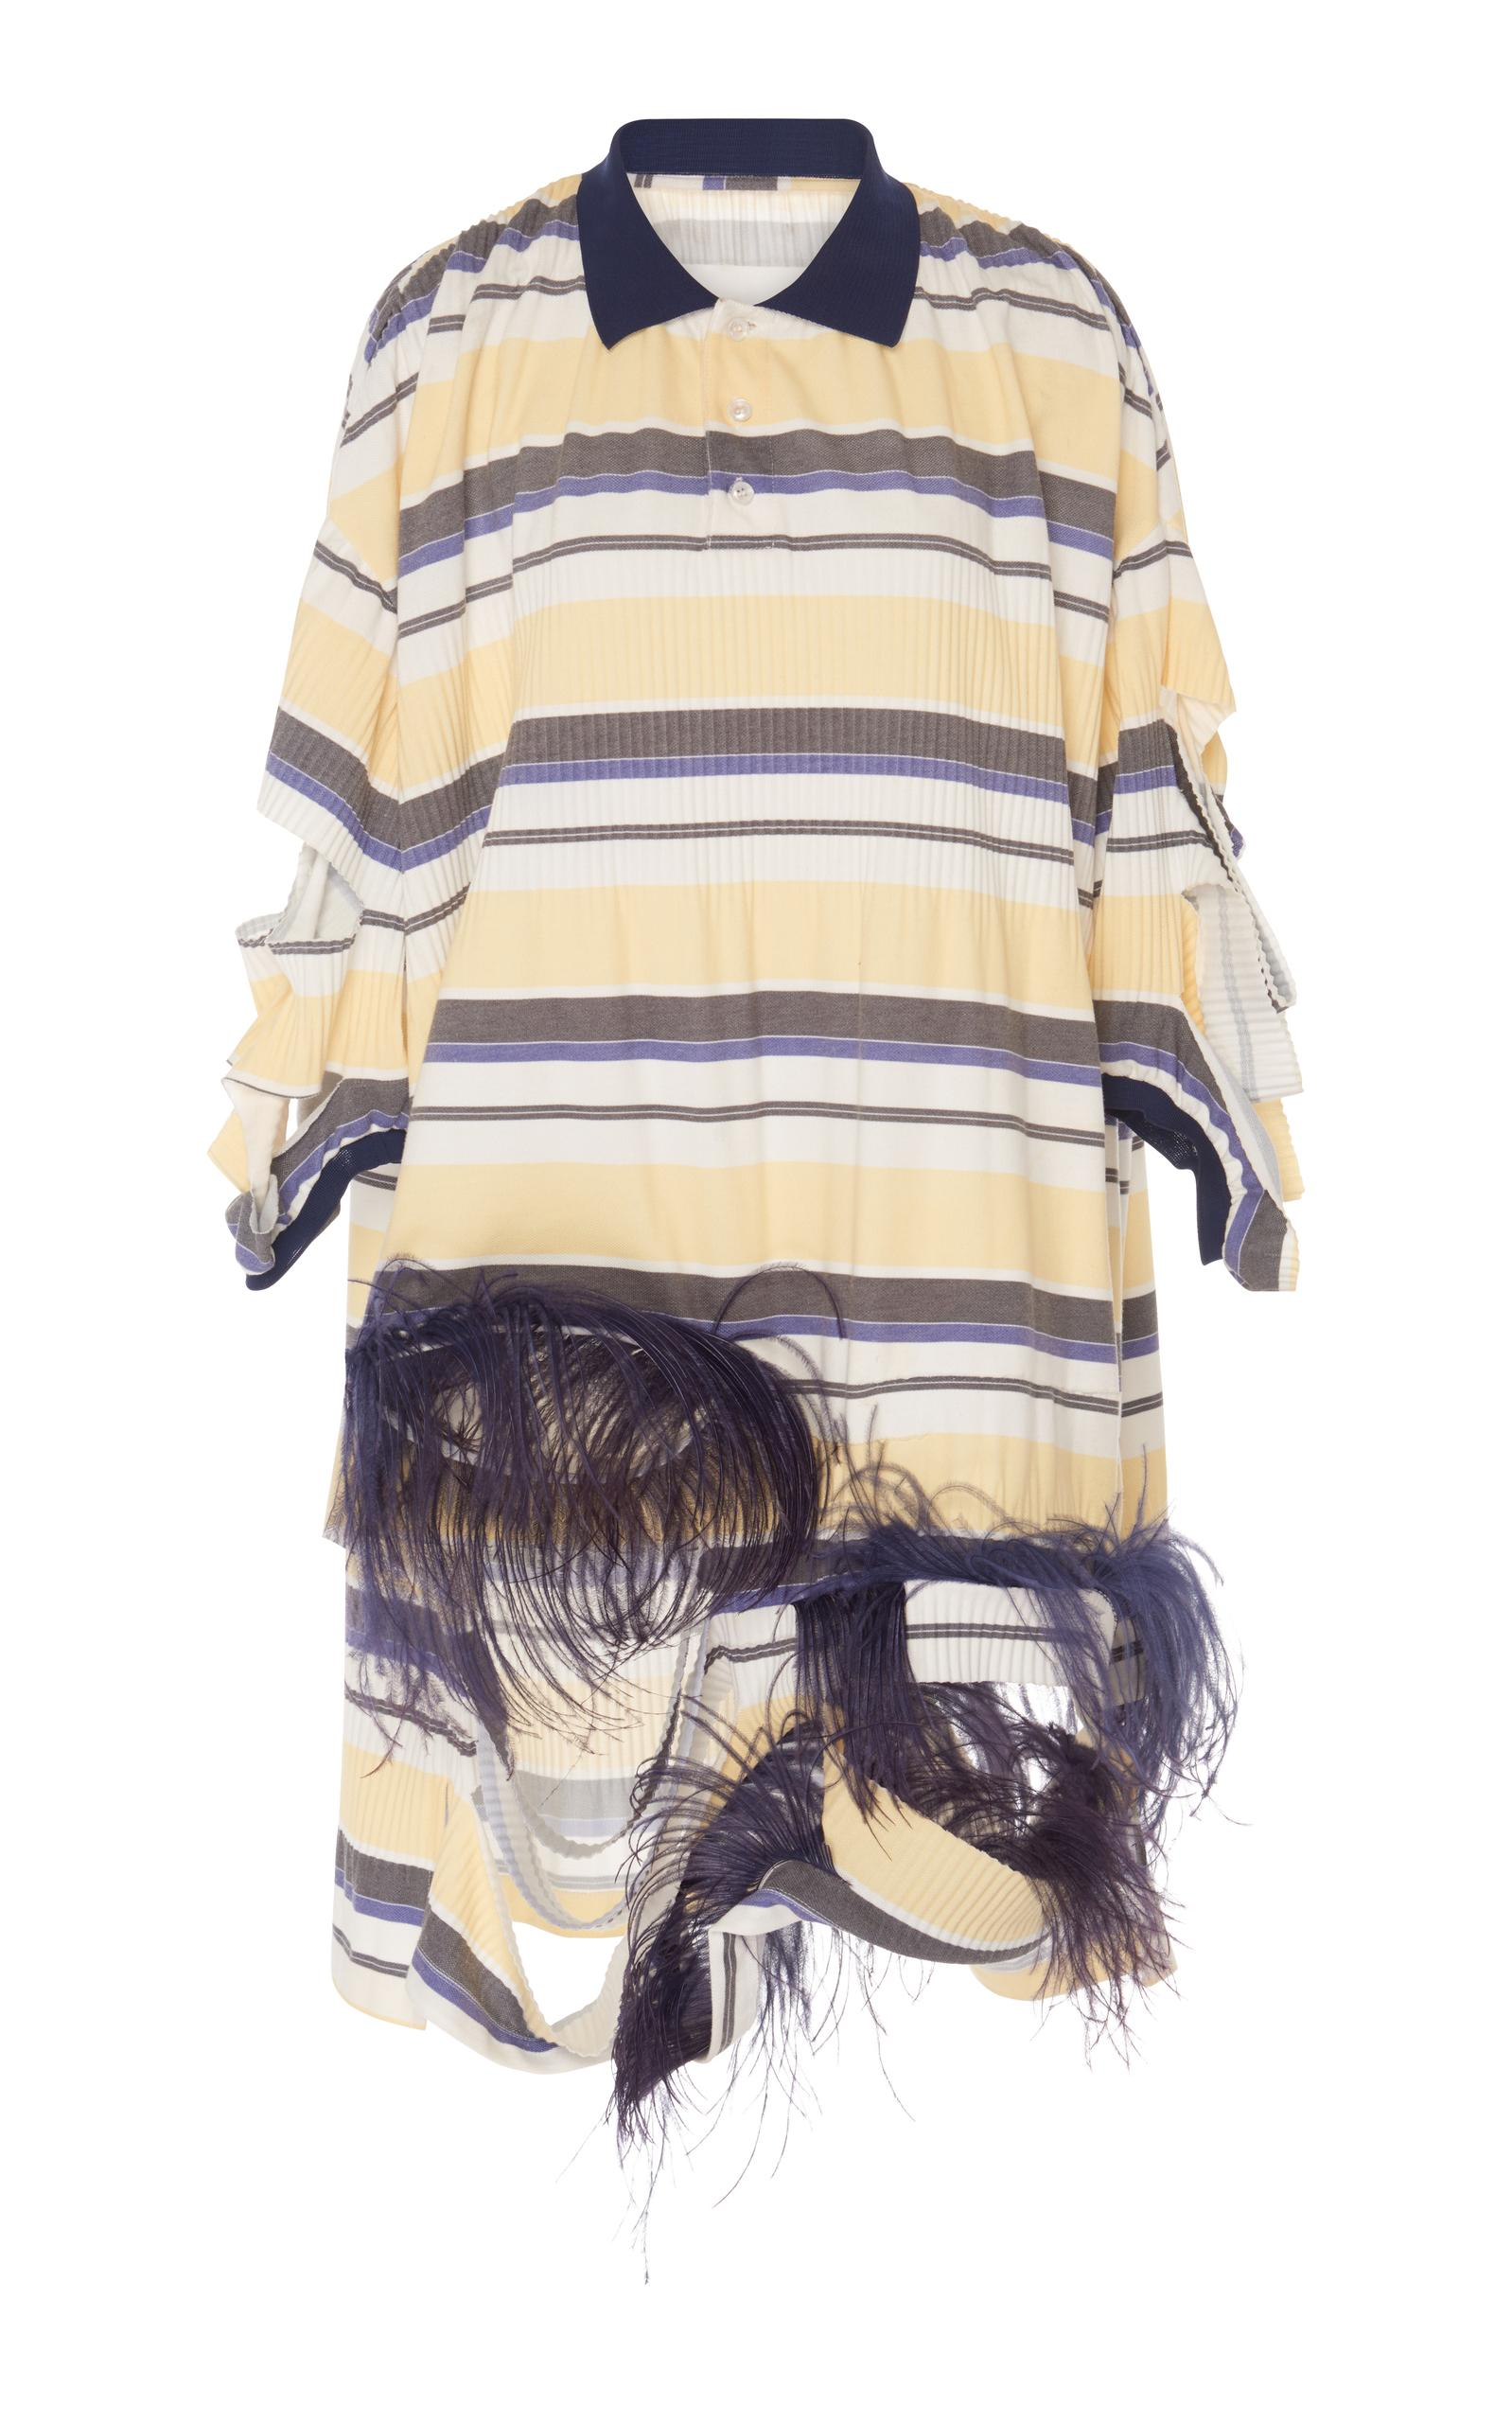 Maison Margiela Oversized Polo Shirt Dress In Multi